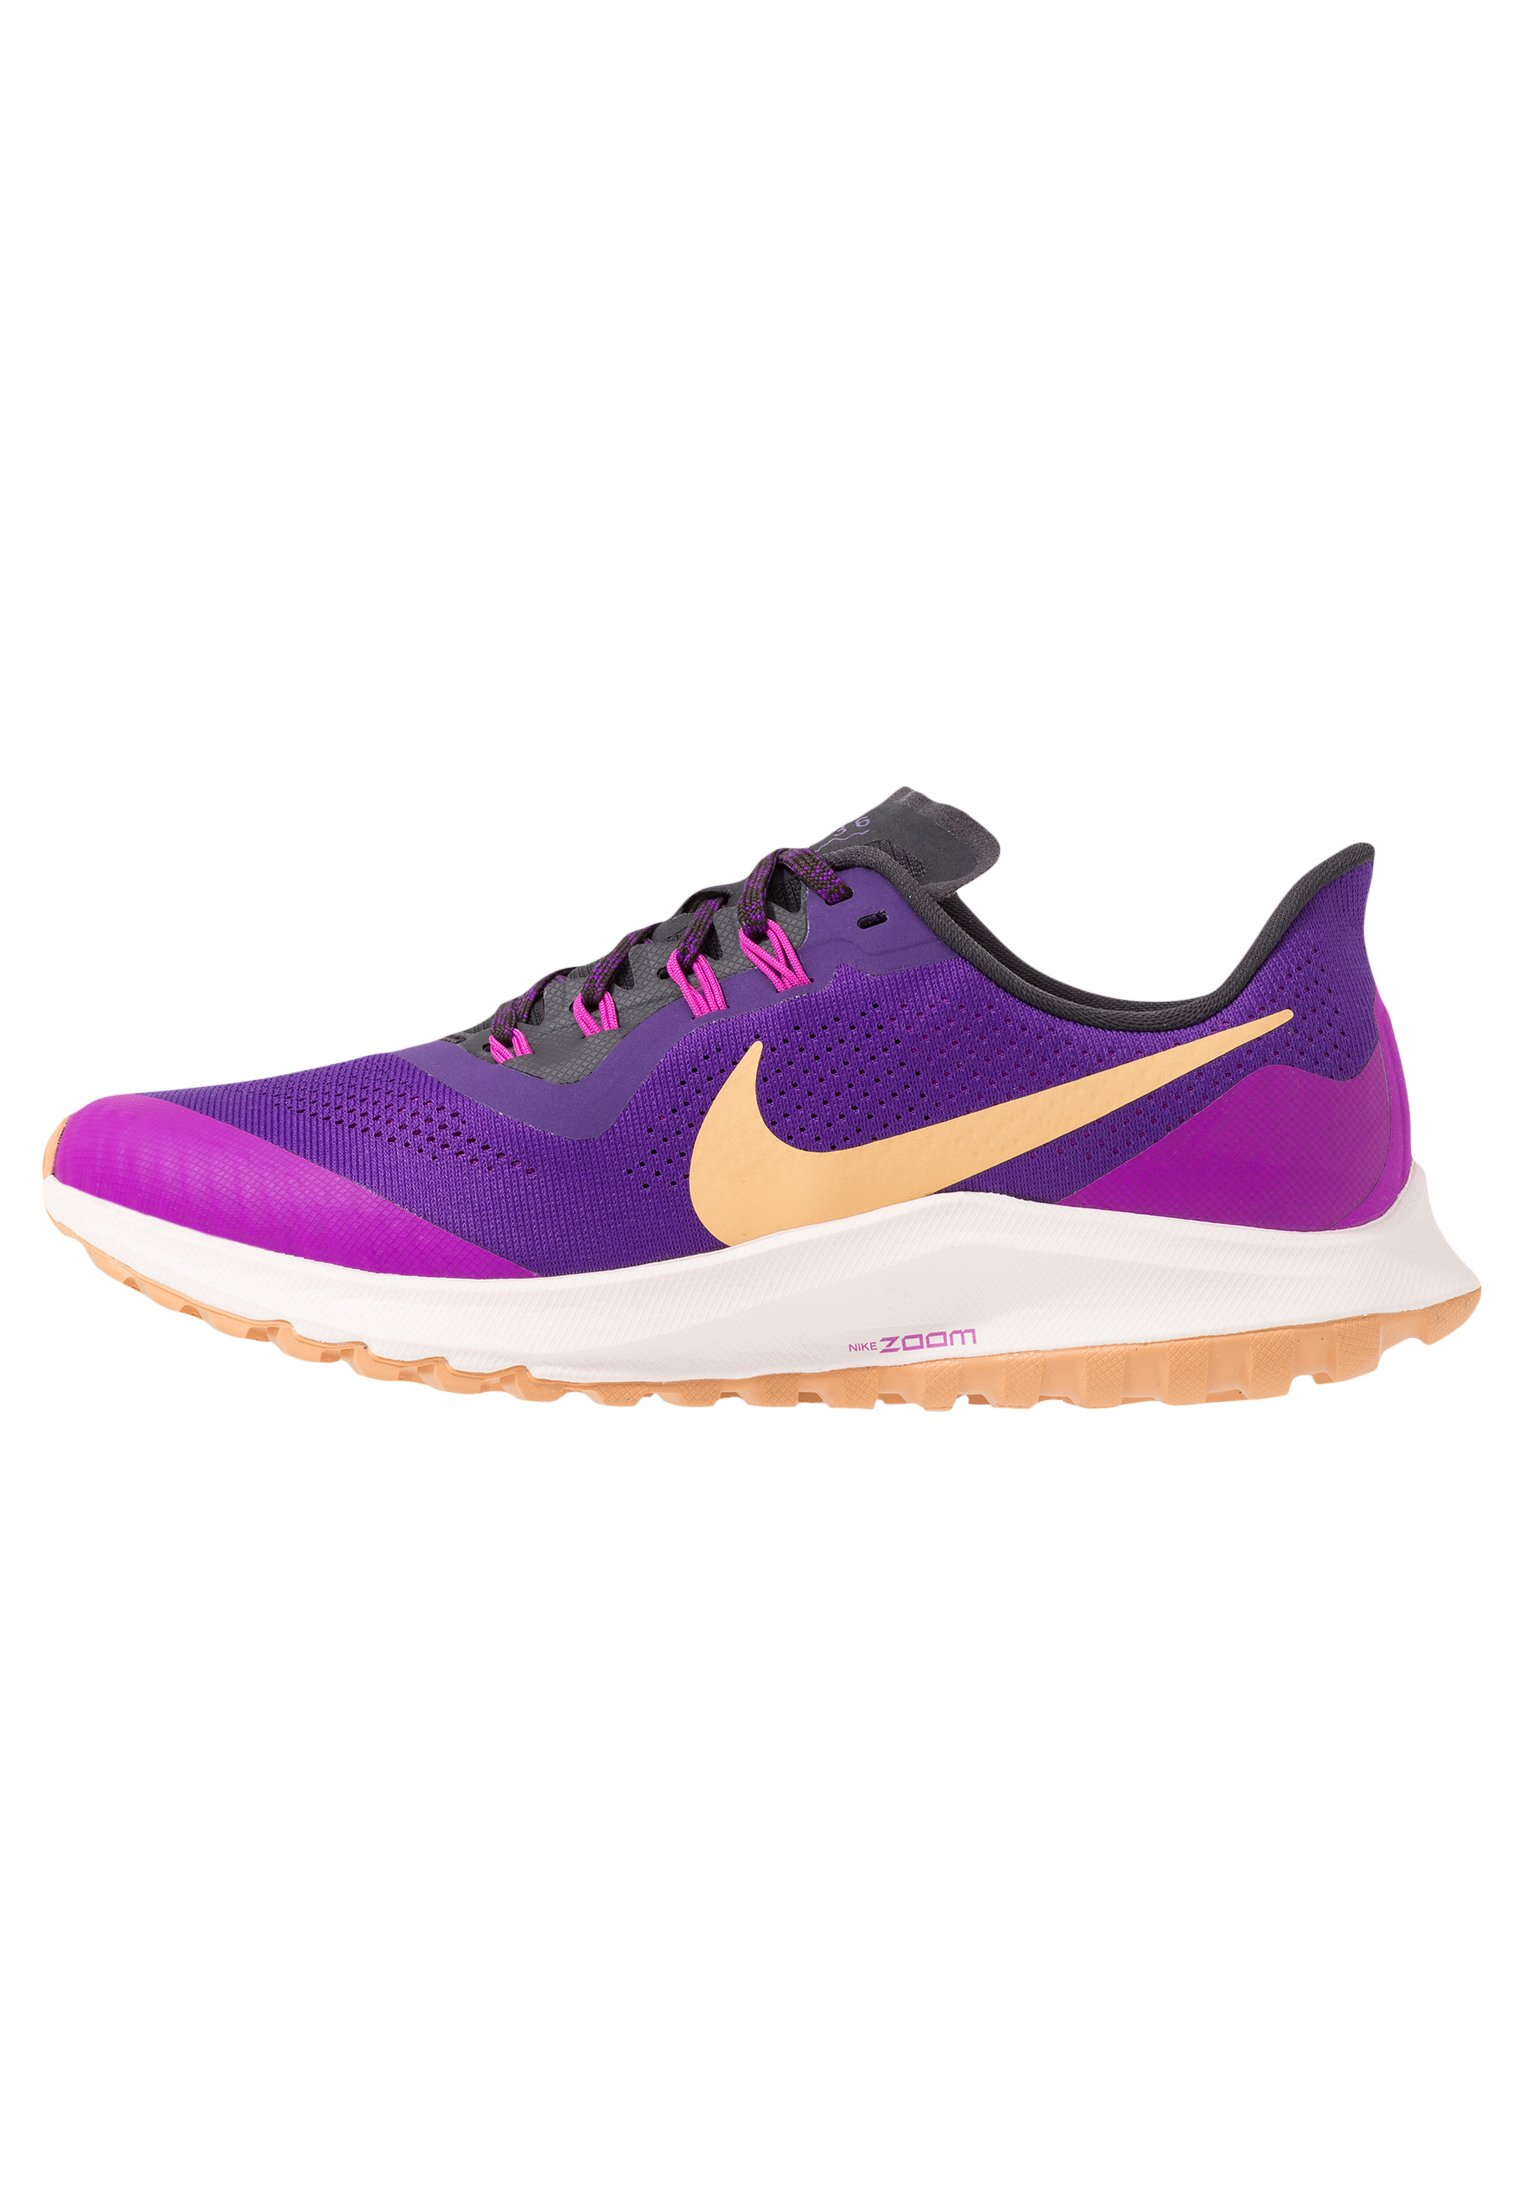 AIR ZOOM PEGASUS 36 TRAIL Scarpe da trail running voltage purplecelestial goldoil greyhyper violet lt soft pink copper moon